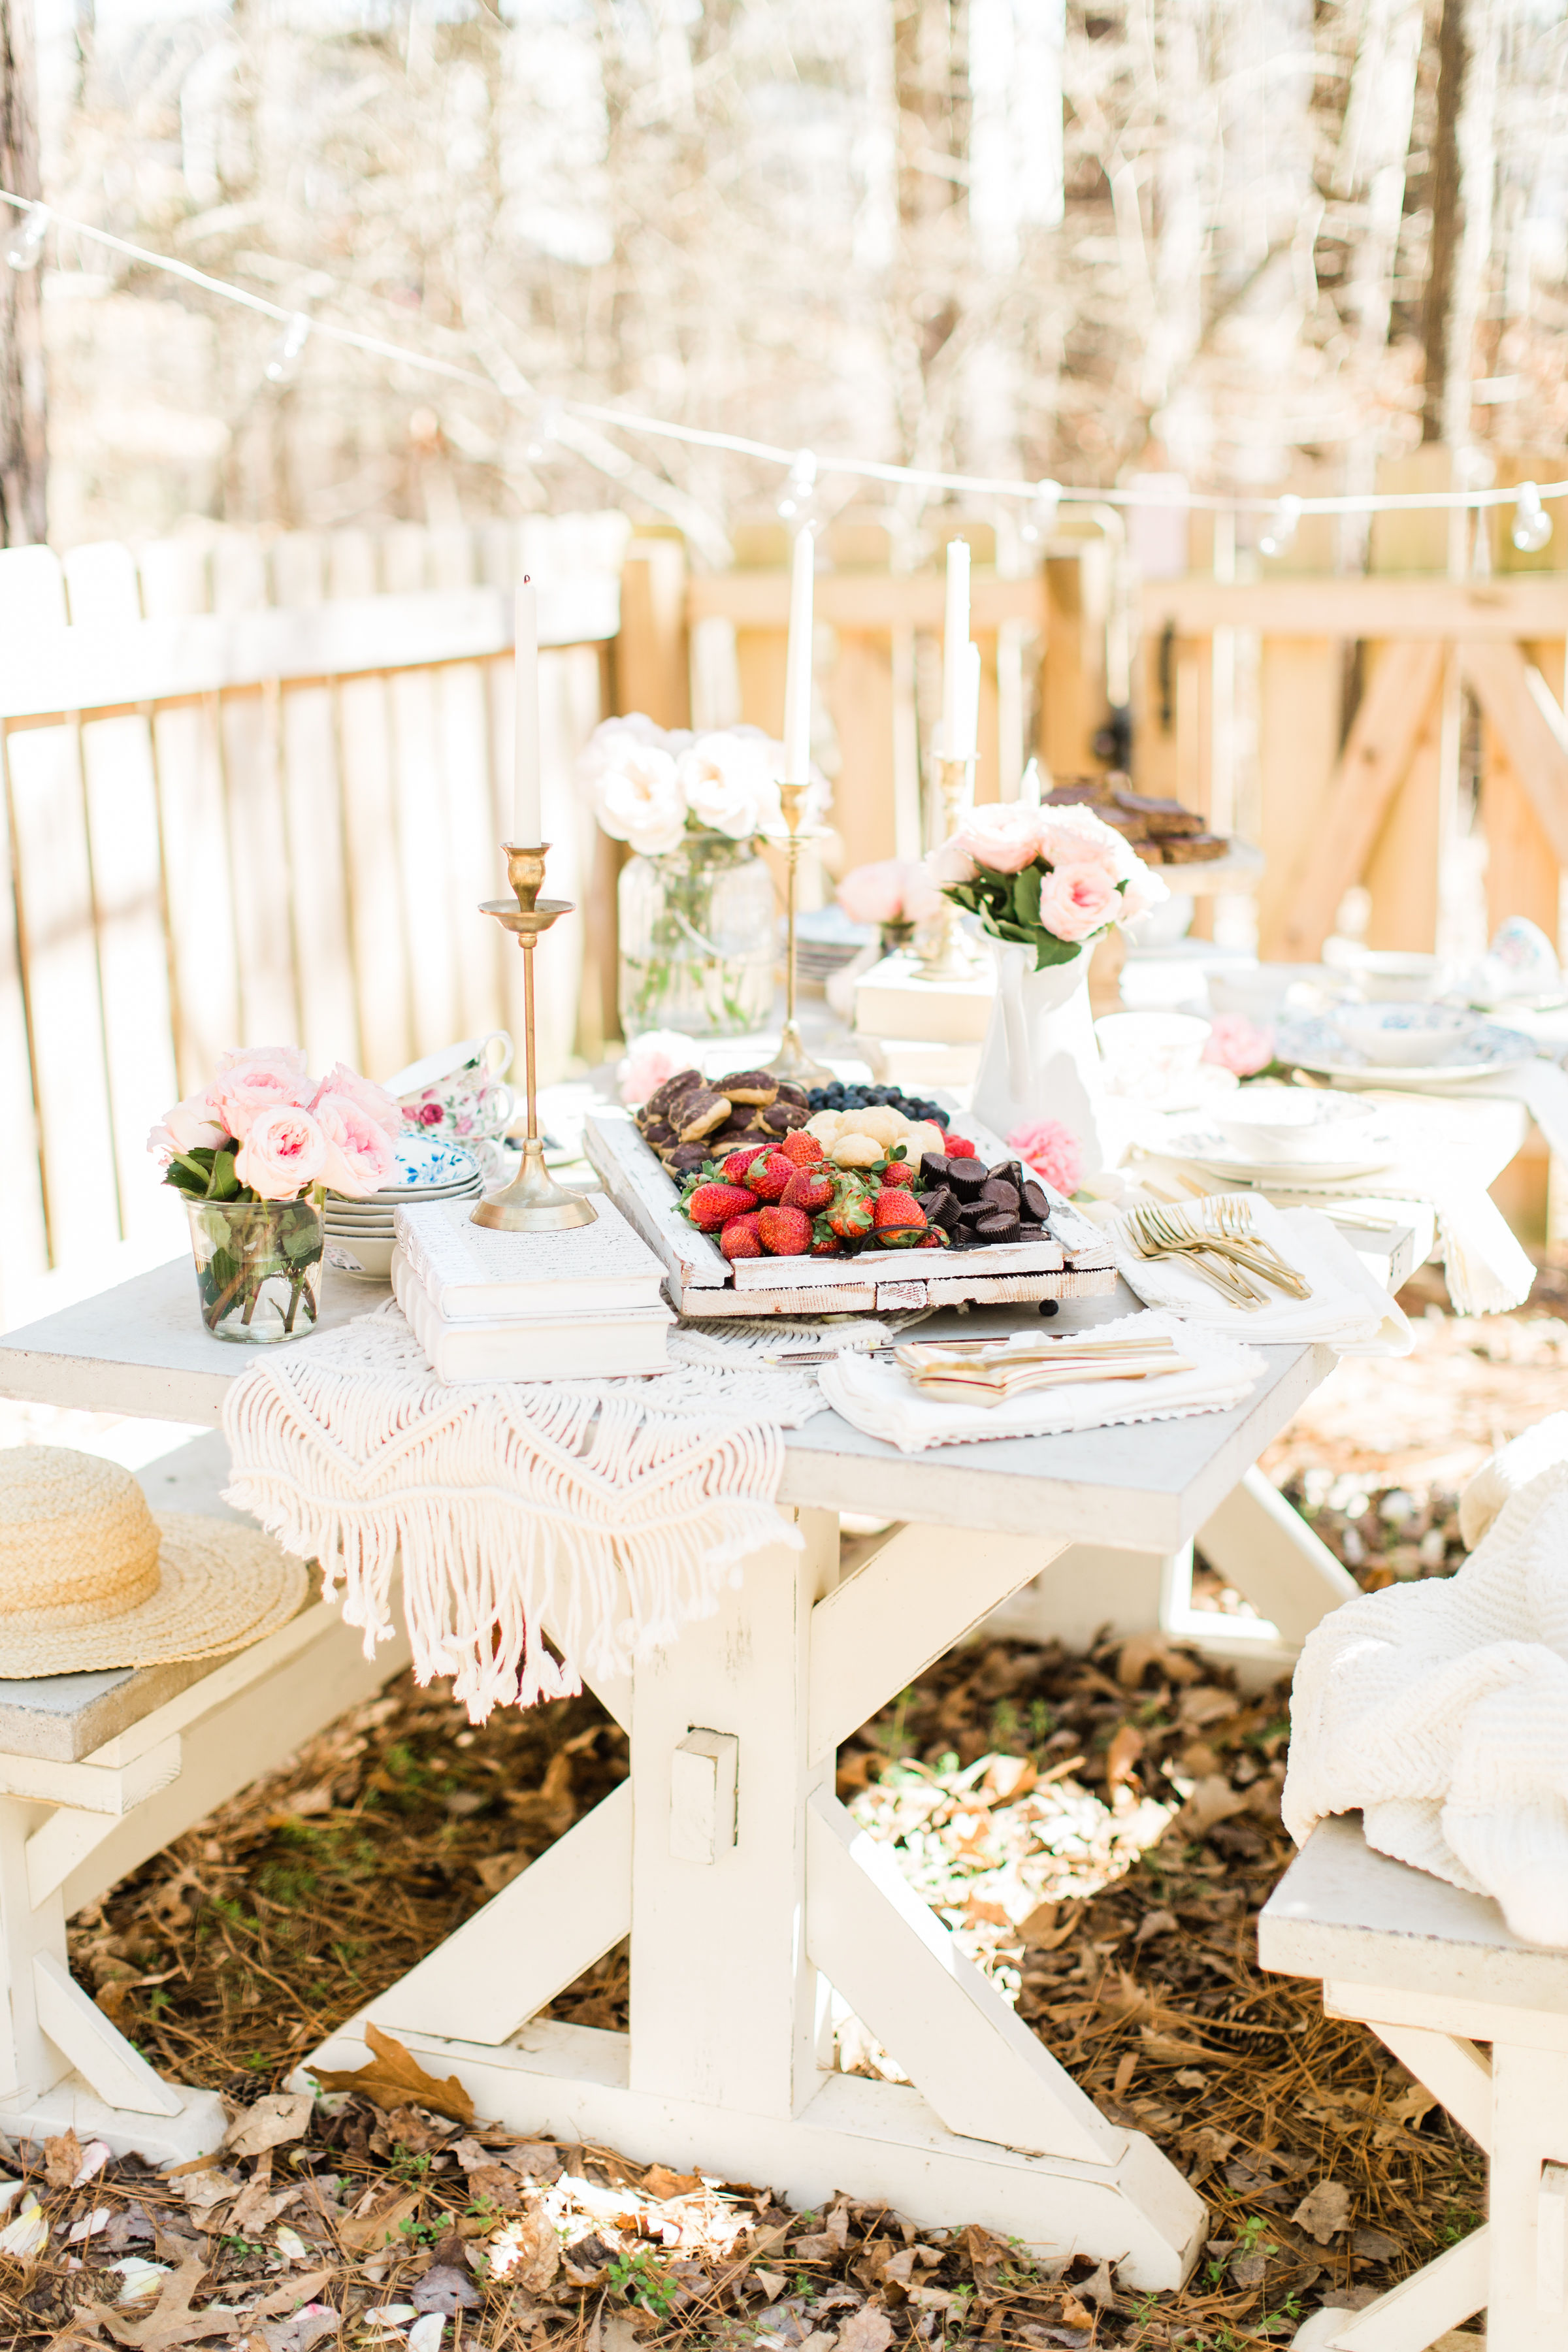 When it comes to a beautiful and bright outdoor party, simplicity is the name of the game.